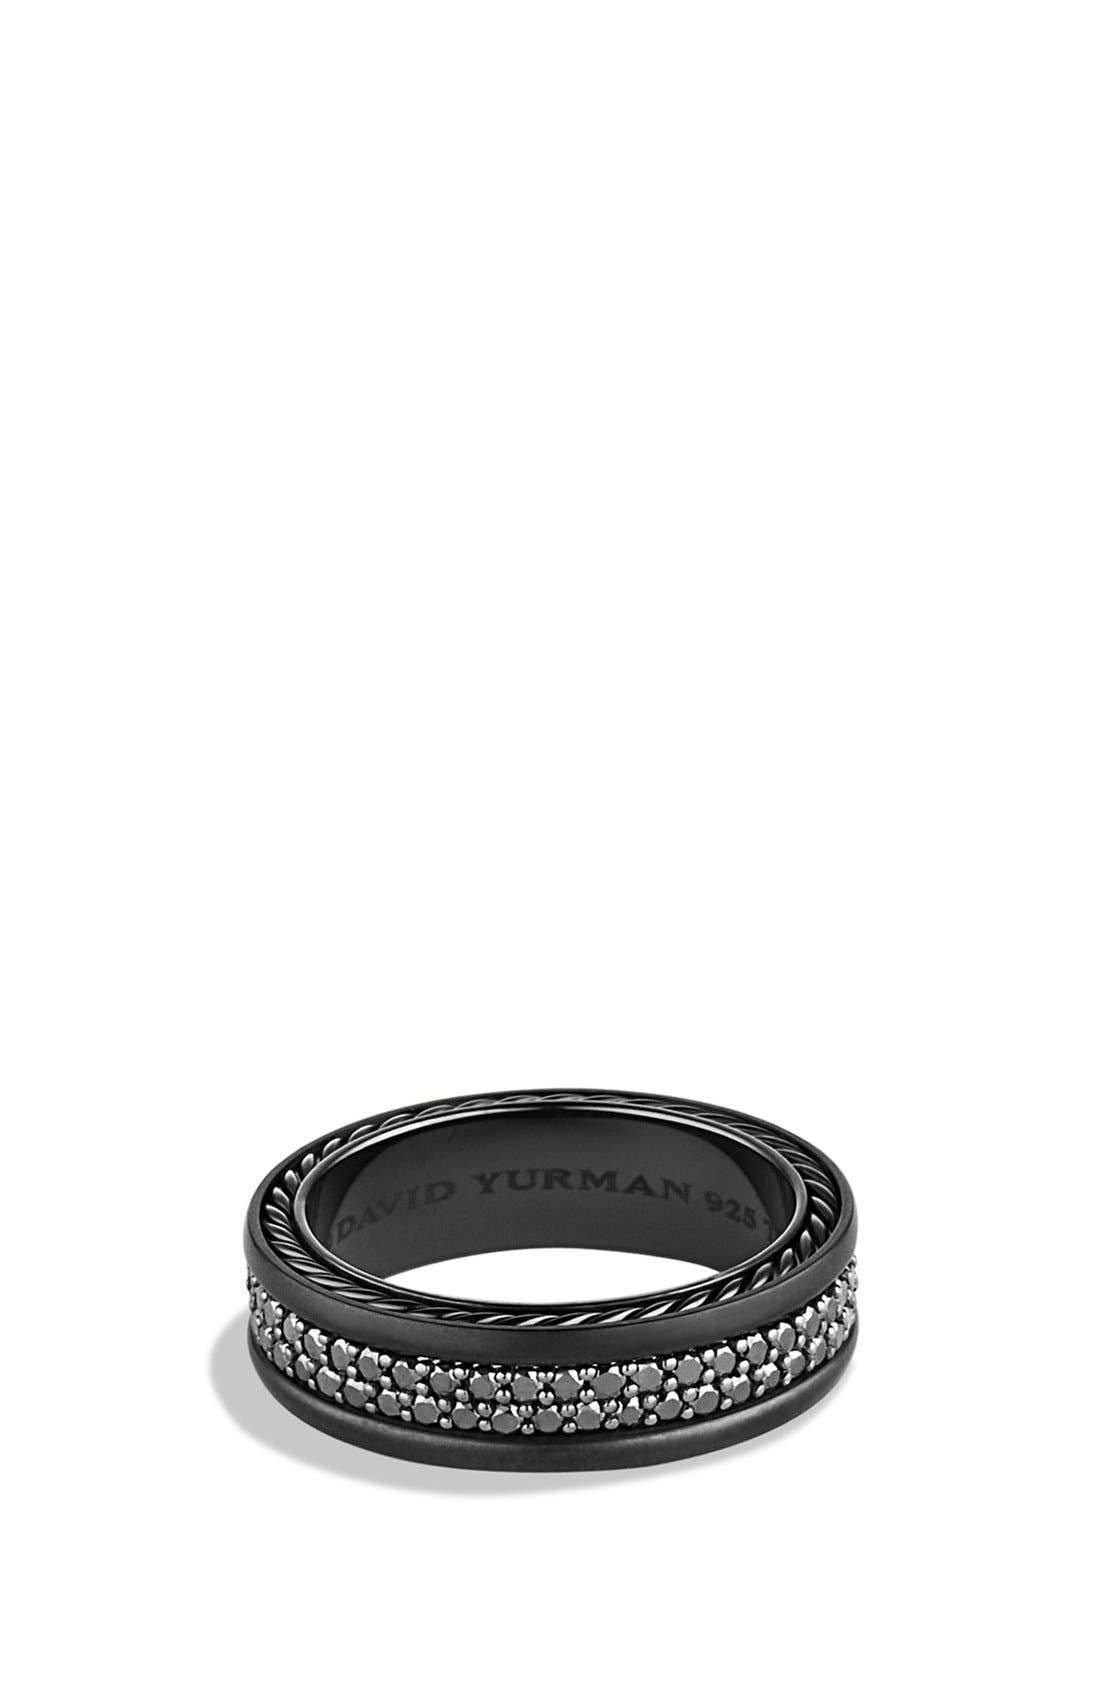 Main Image - David Yurman 'Streamline' Two-Row Band Ring with Gems & Black Titanium